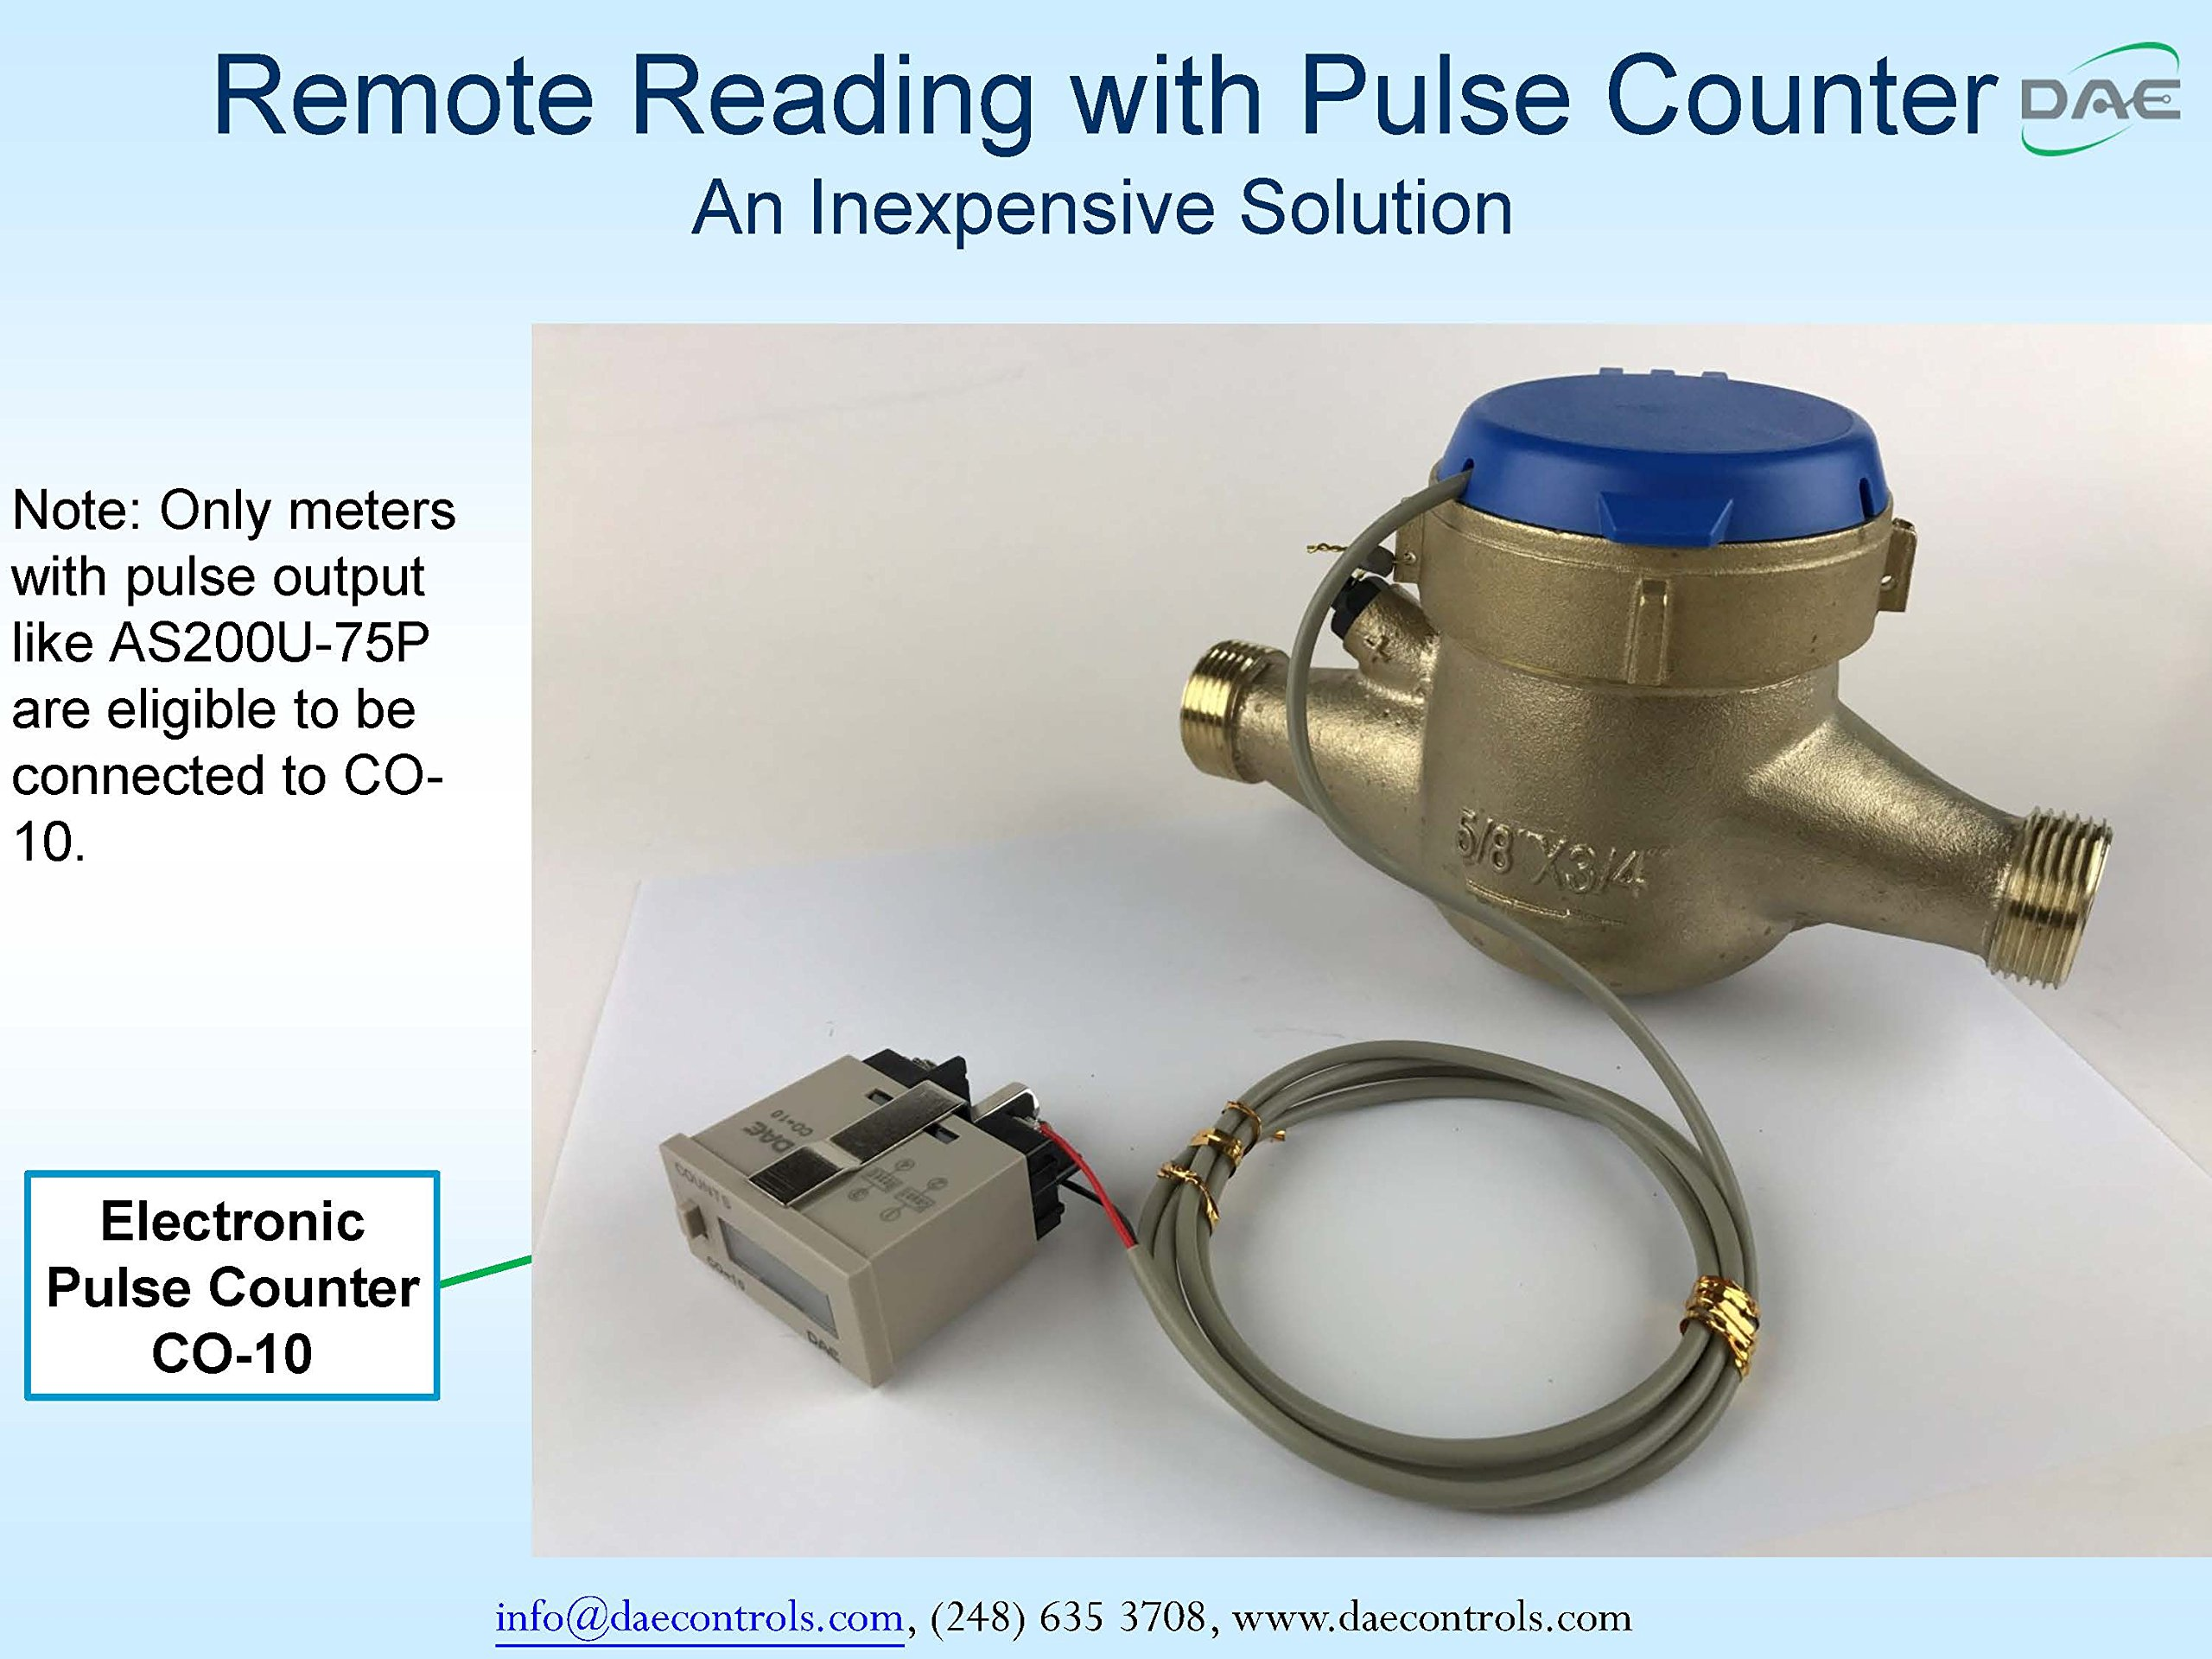 """DAE AS320U-150P 1-1/2"""" Water Meter with Pulse Output, Measuring in Gallon + Coupling by DAE (Image #6)"""